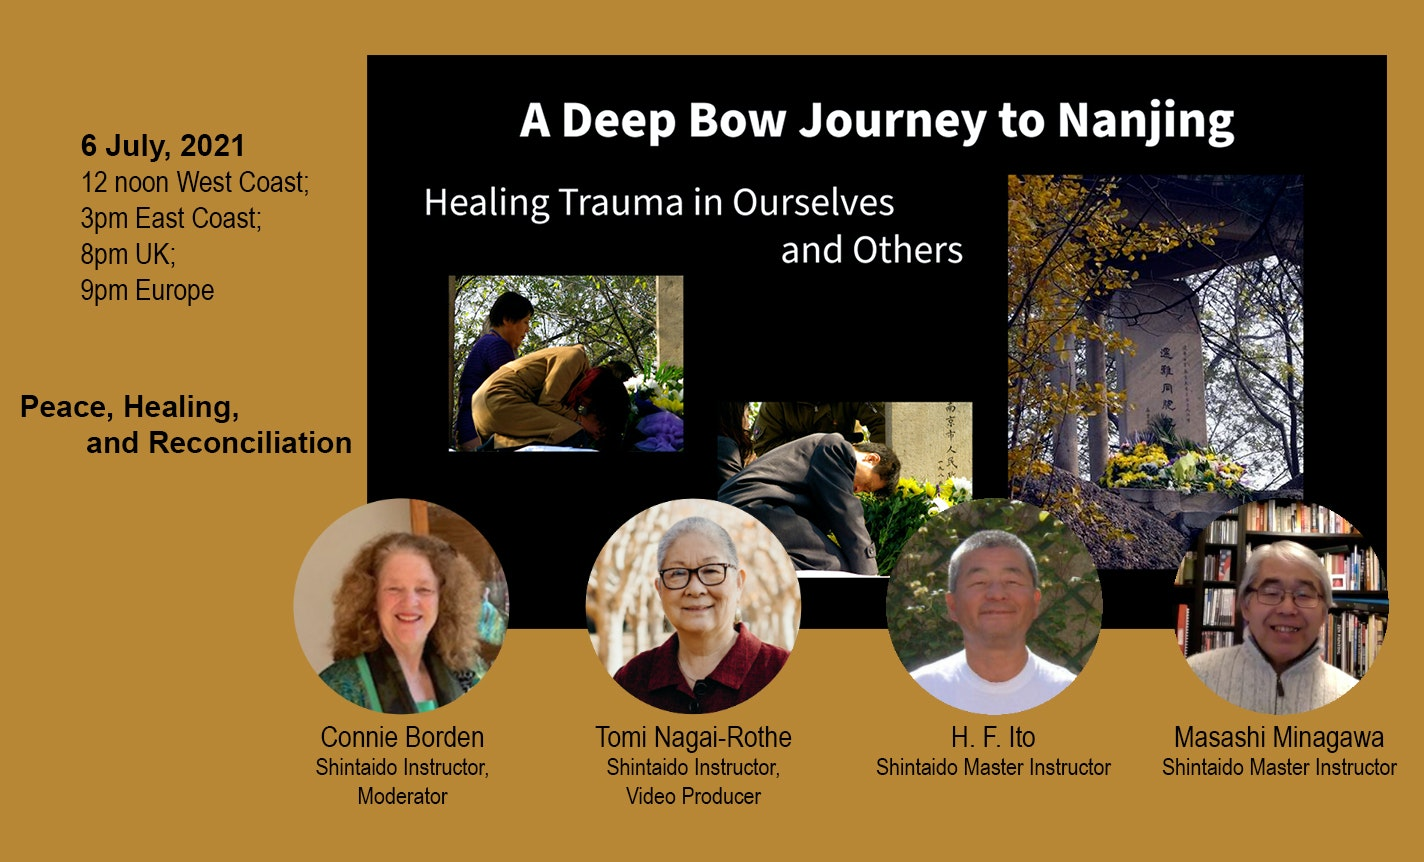 A Deep Bow Journey: Healing Trauma in Ourselves and Others